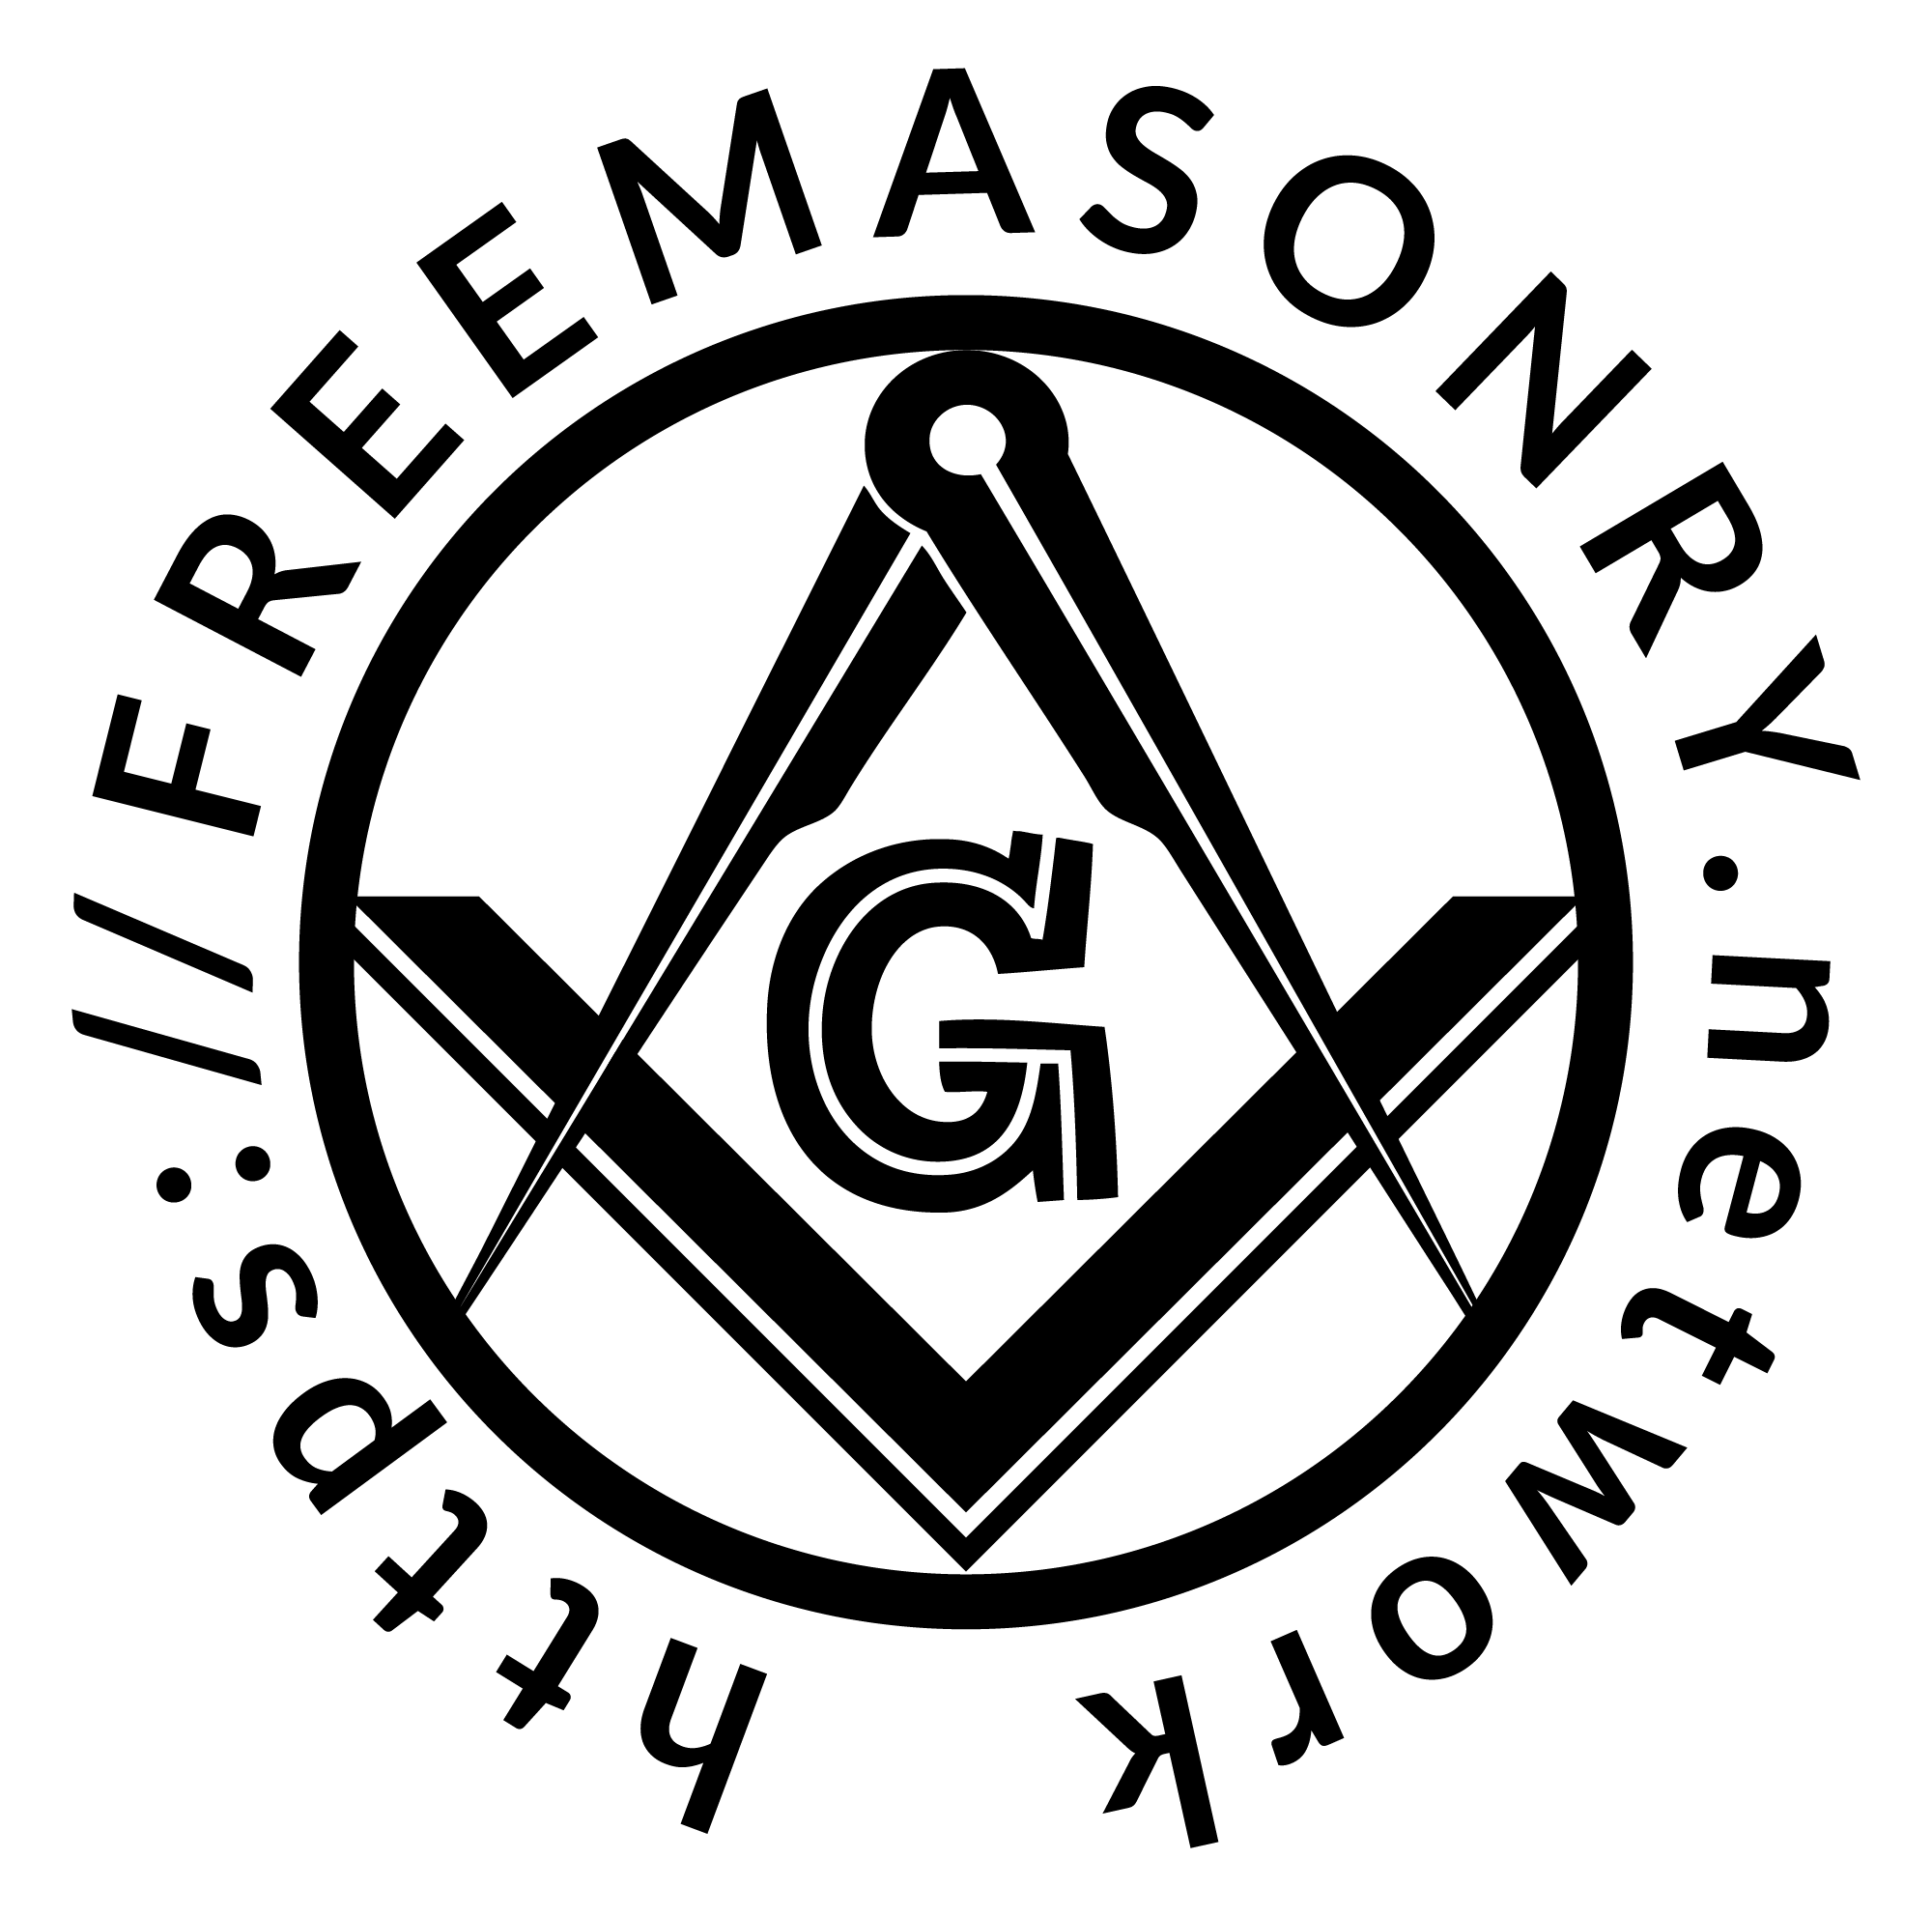 CRYPTIC MASONRY